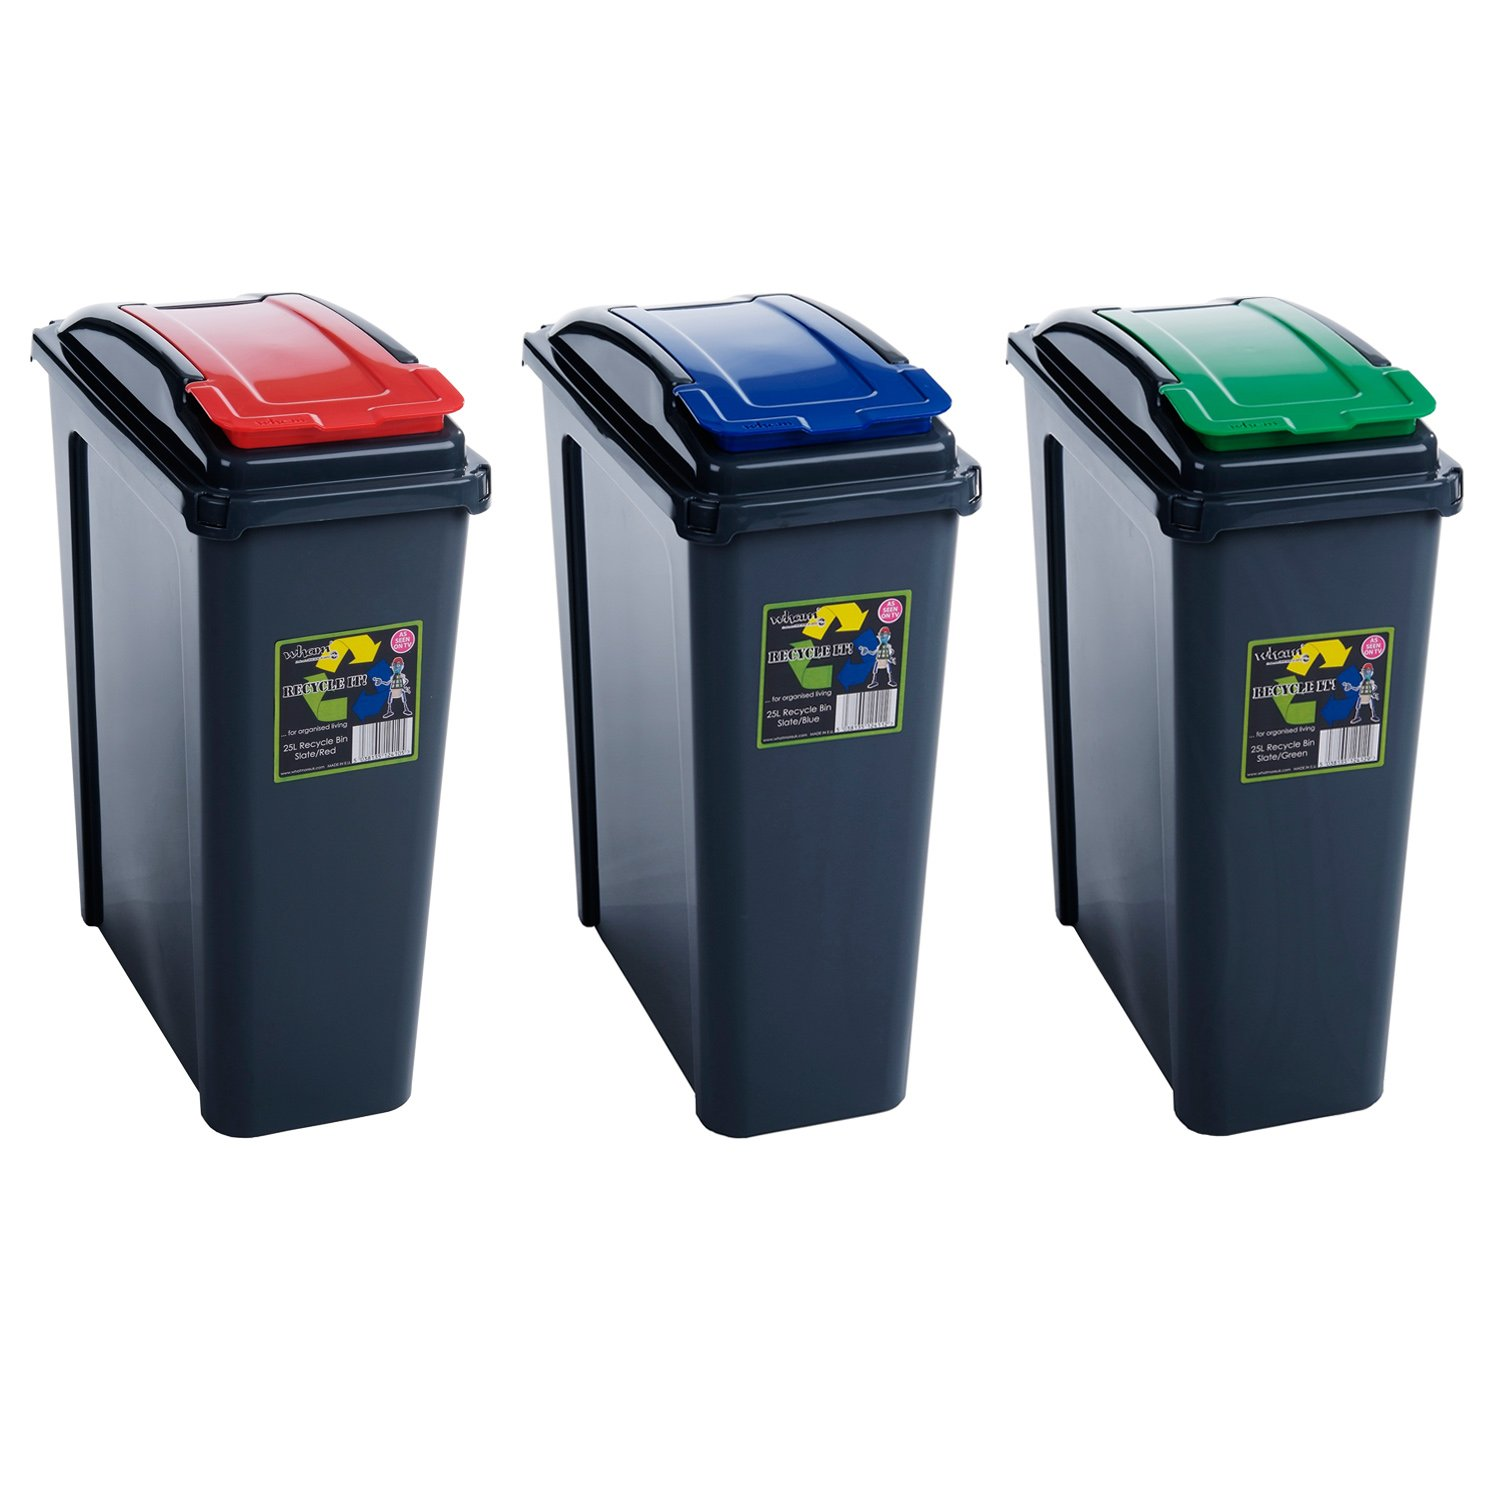 PLASTIC 25L PACK OF THREE RECYCLING BINS WASTE RUBBISH DUST GARDEN,KITCHEN OFFICE  RECYCLE BIN NEW: Amazon.co.uk: Kitchen U0026 Home